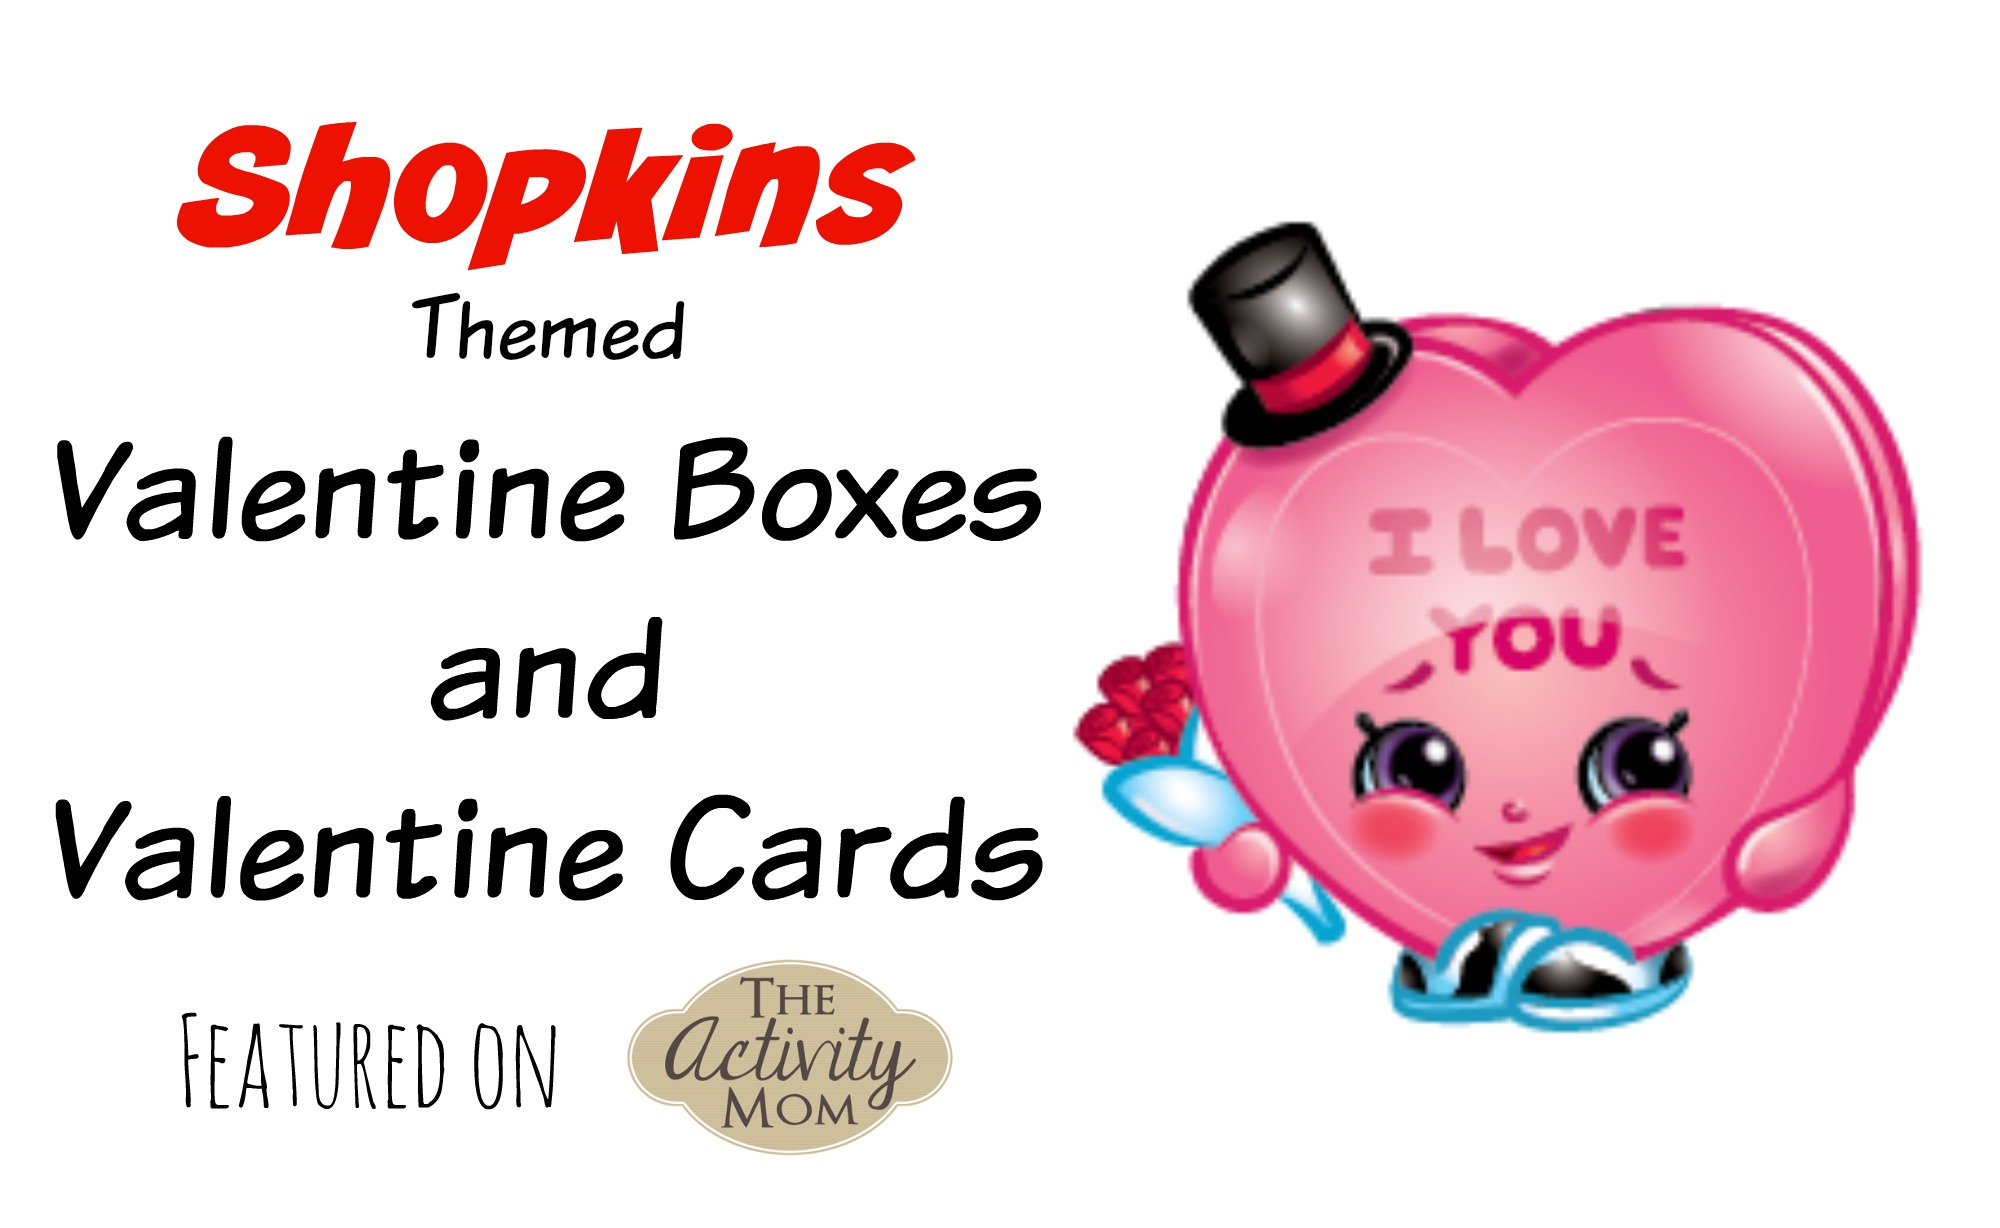 The Activity Mom Shopkins Valentines Day The Activity Mom